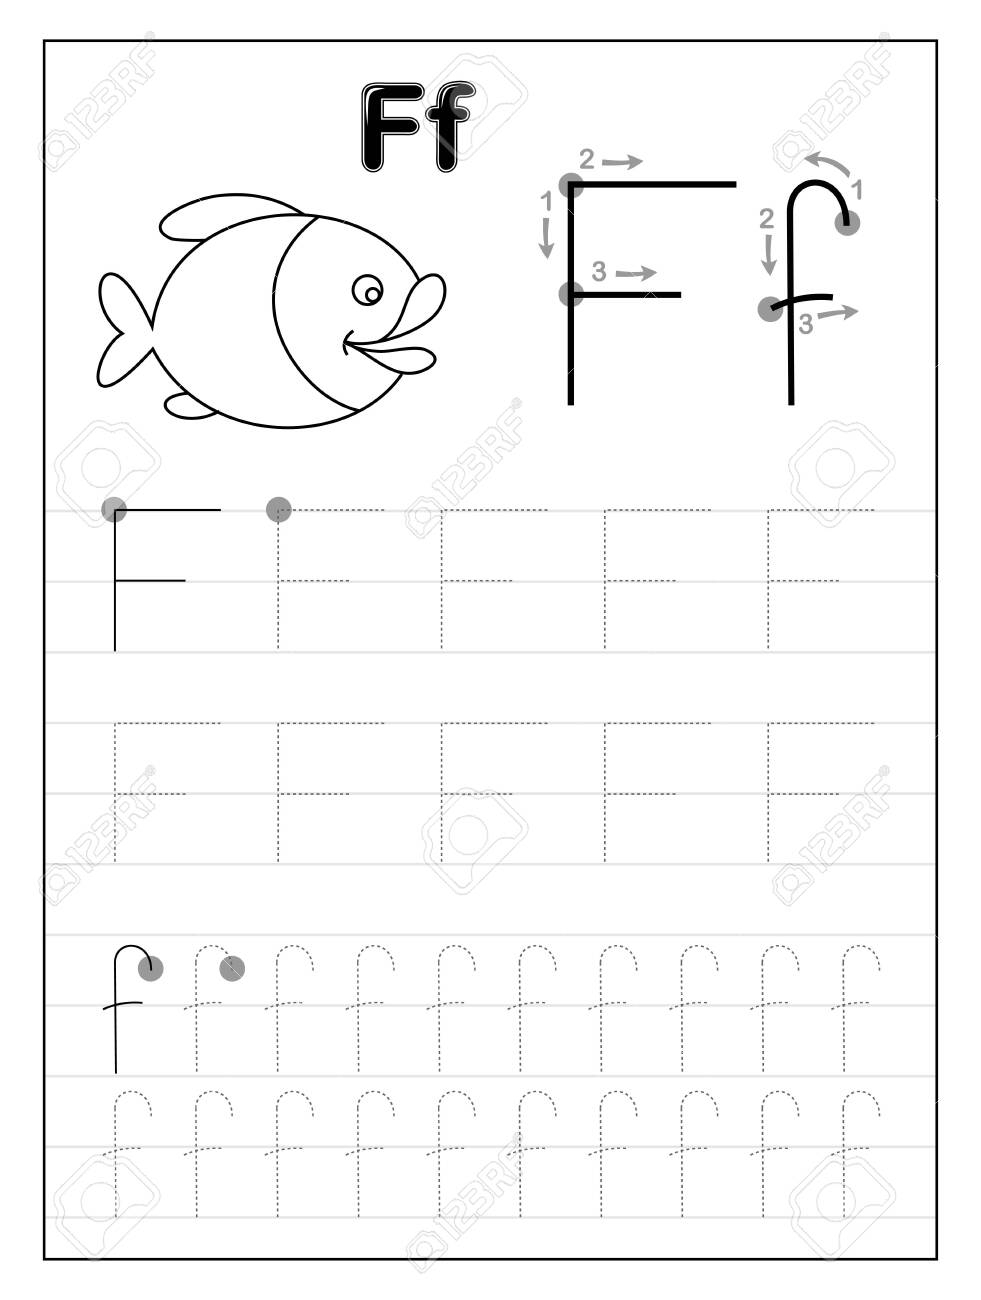 Worksheet ~ Tracing Alphabet Letter Black And White intended for Letter F Tracing Printable